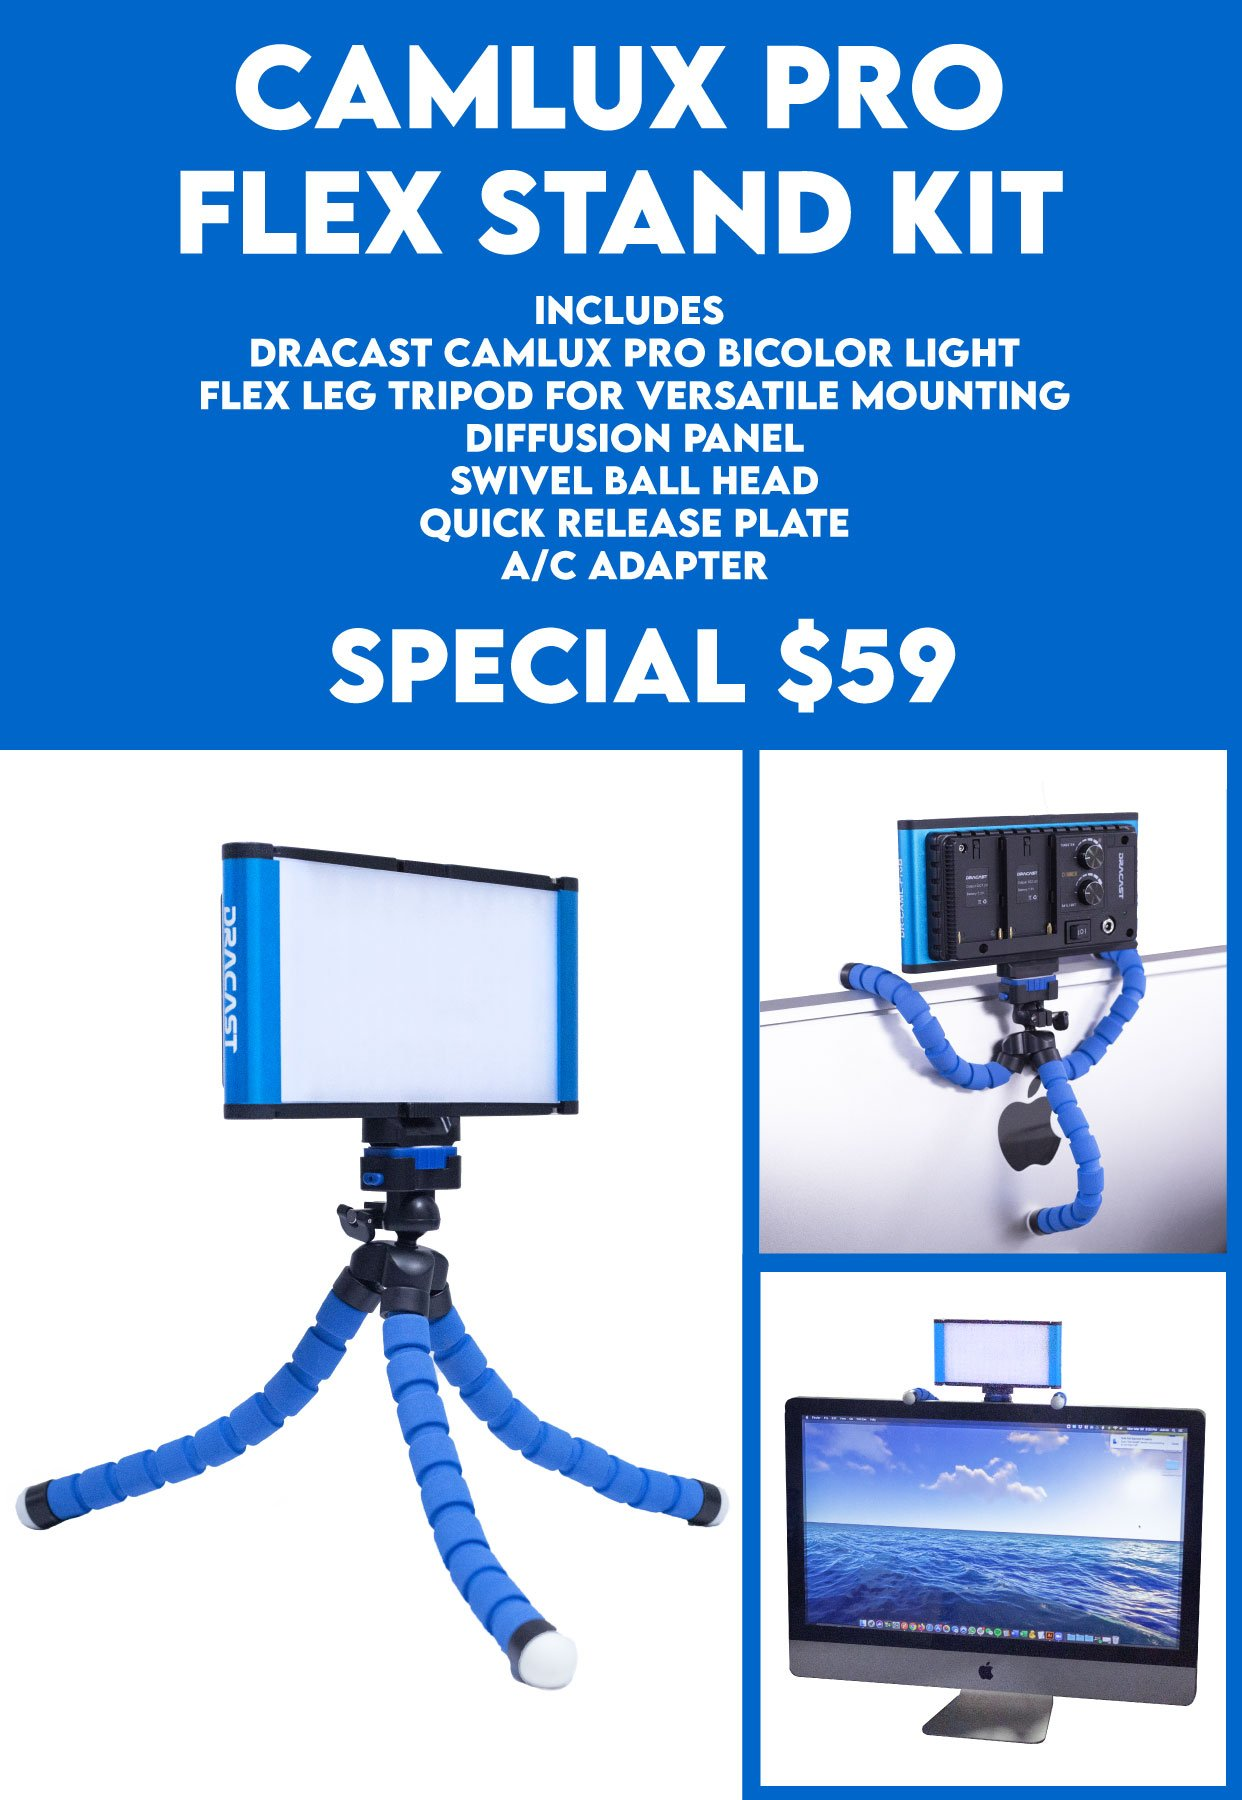 Dracast Camlux Pro Flex Stand Kit Banner Mobile